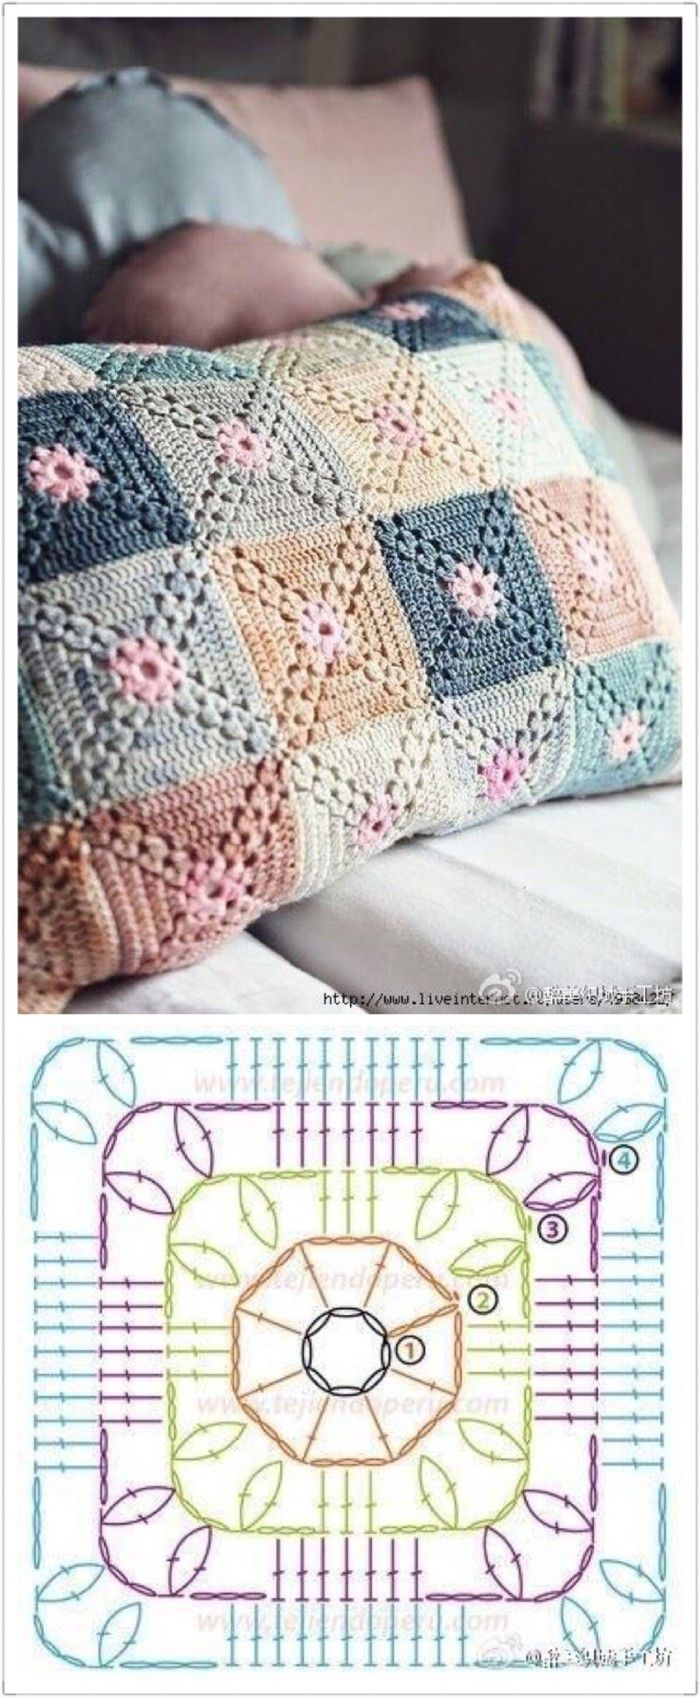 Crochet granny square baby blanket pillow cushion afghan throw ...